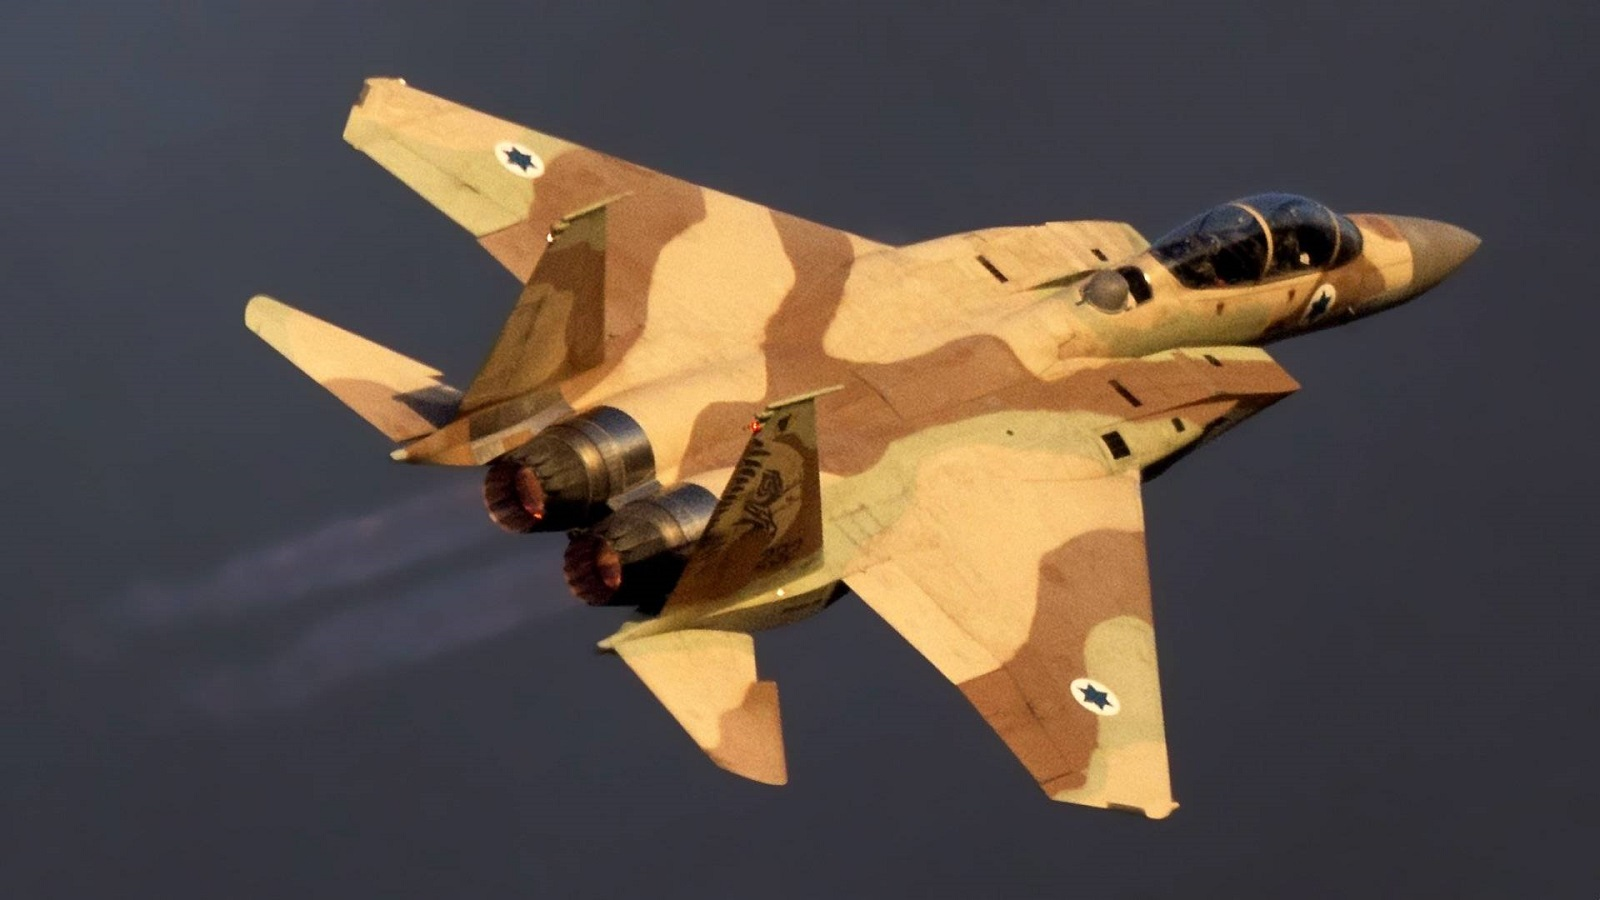 Why Israel's Military Might Have Better F-15s Than the U.S. Air Force